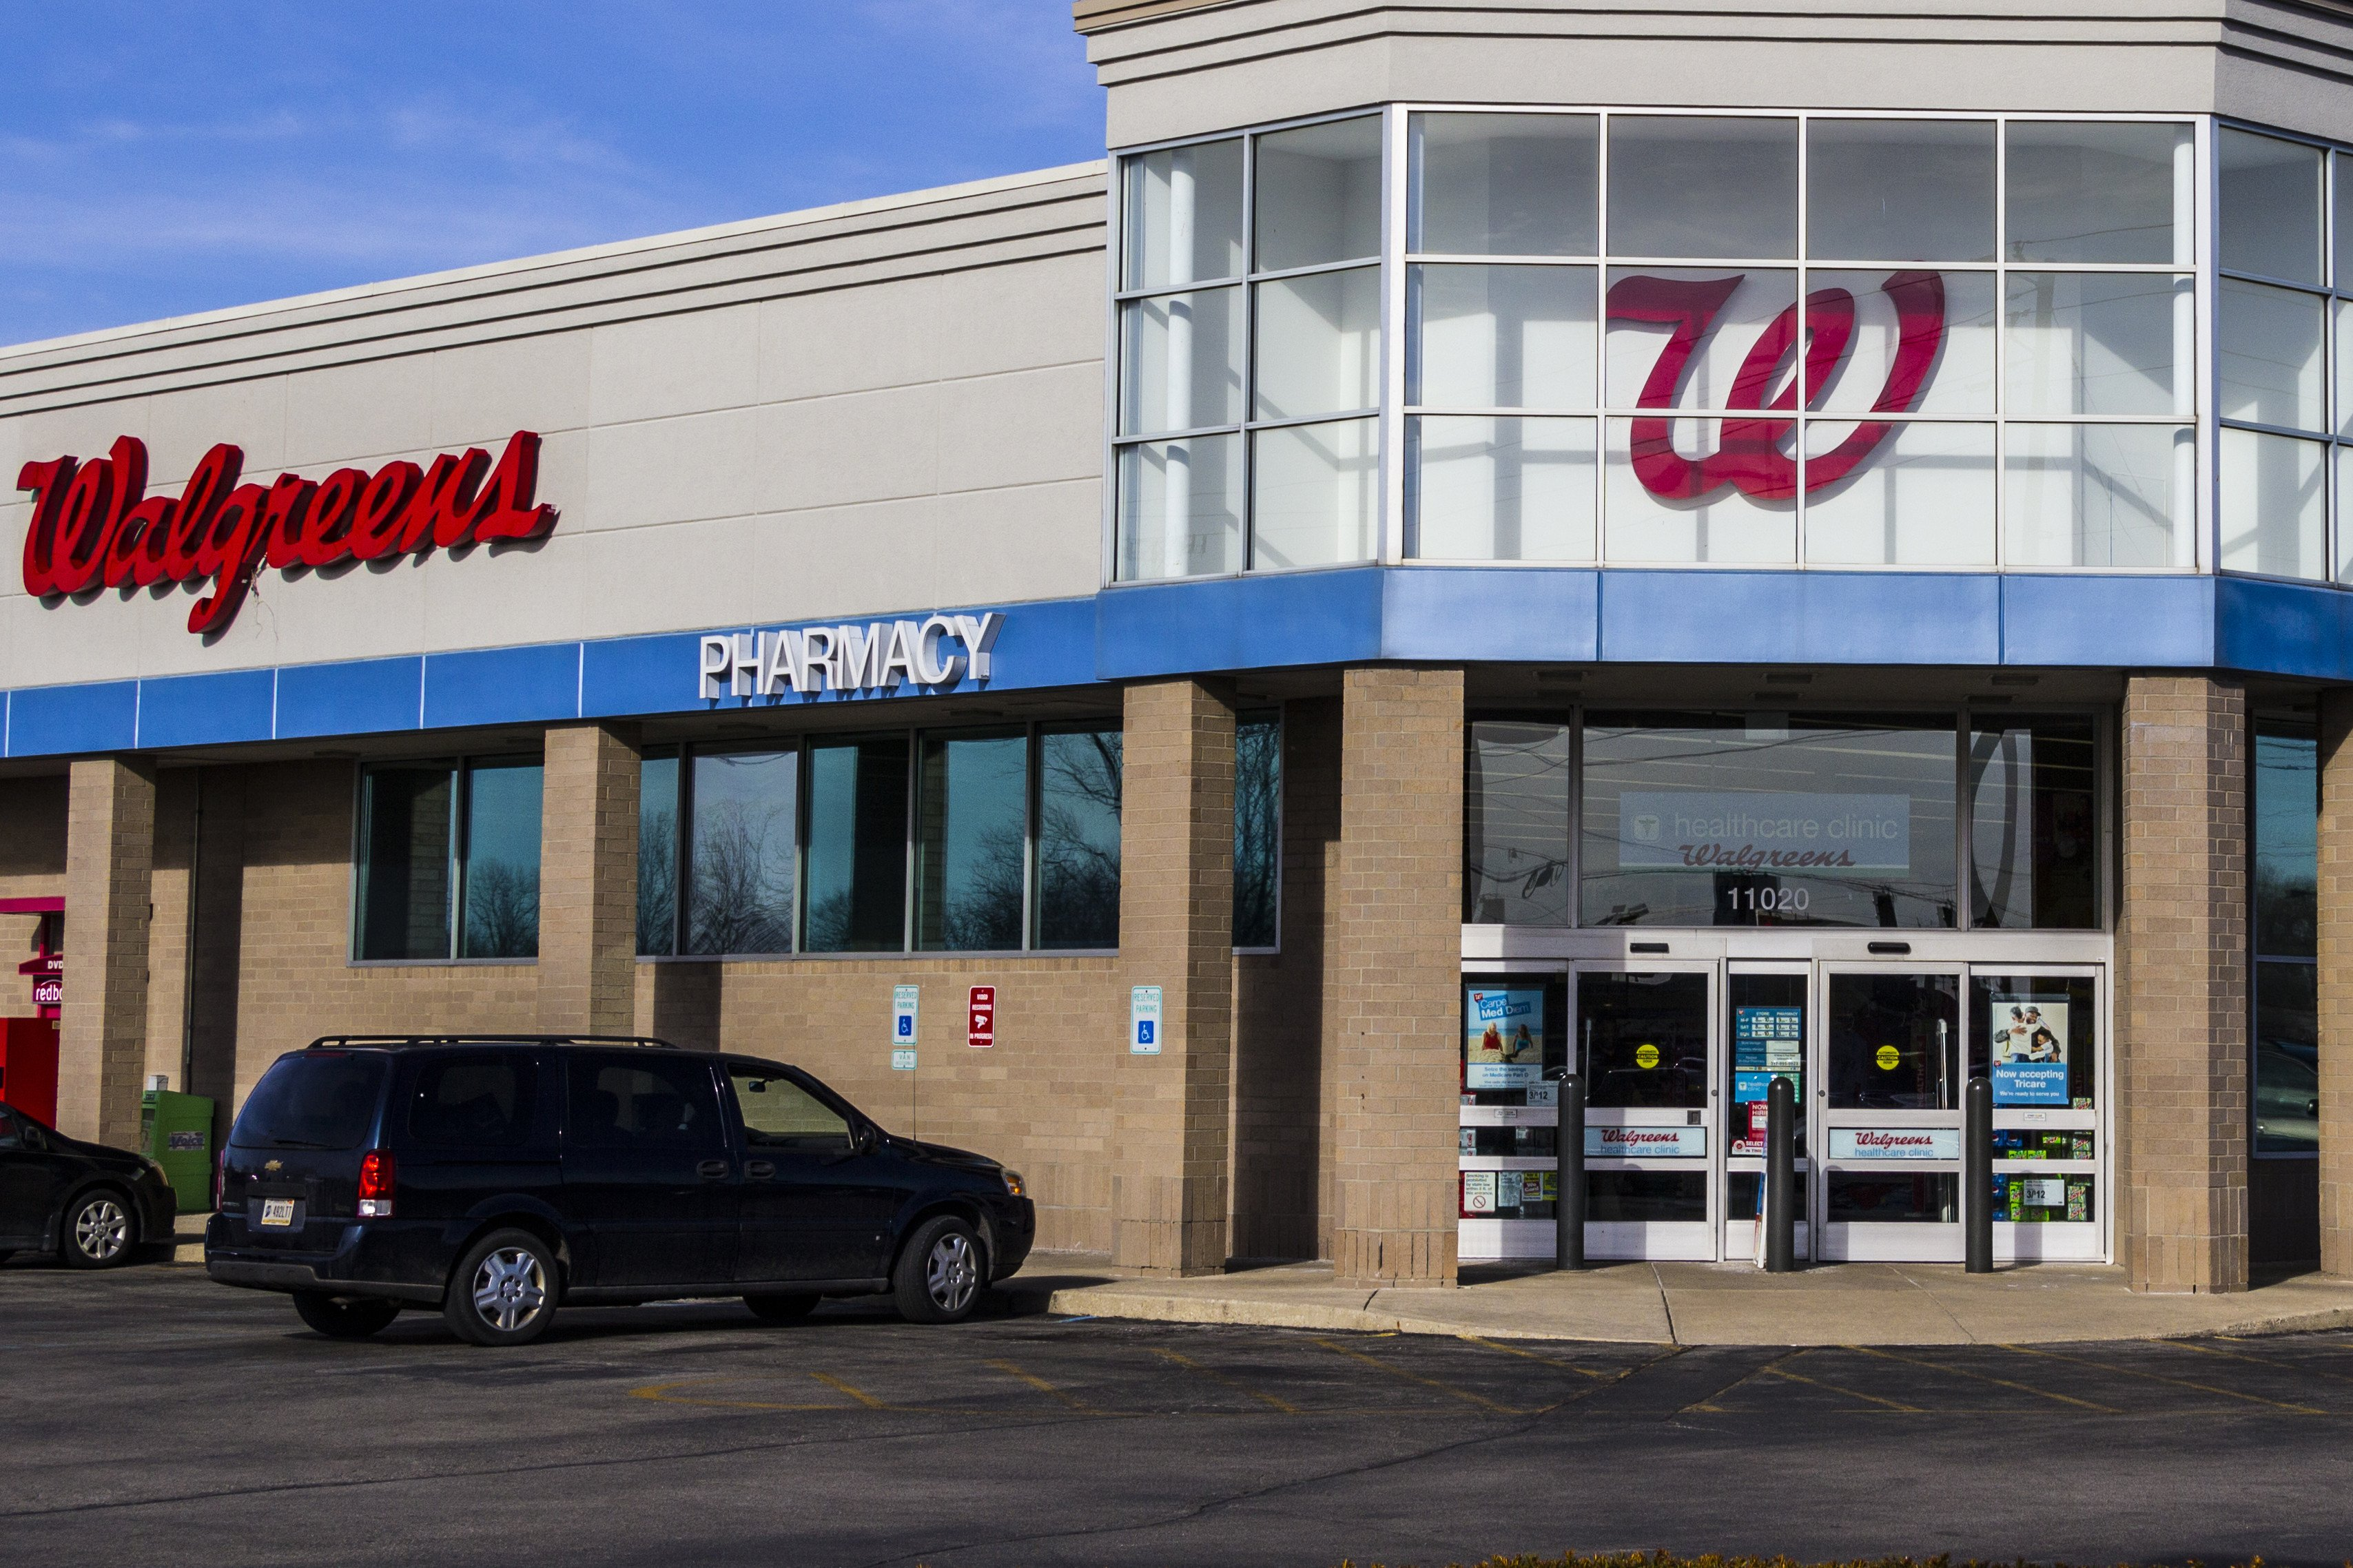 Walgreens will now let customers use bathrooms based on gender identity